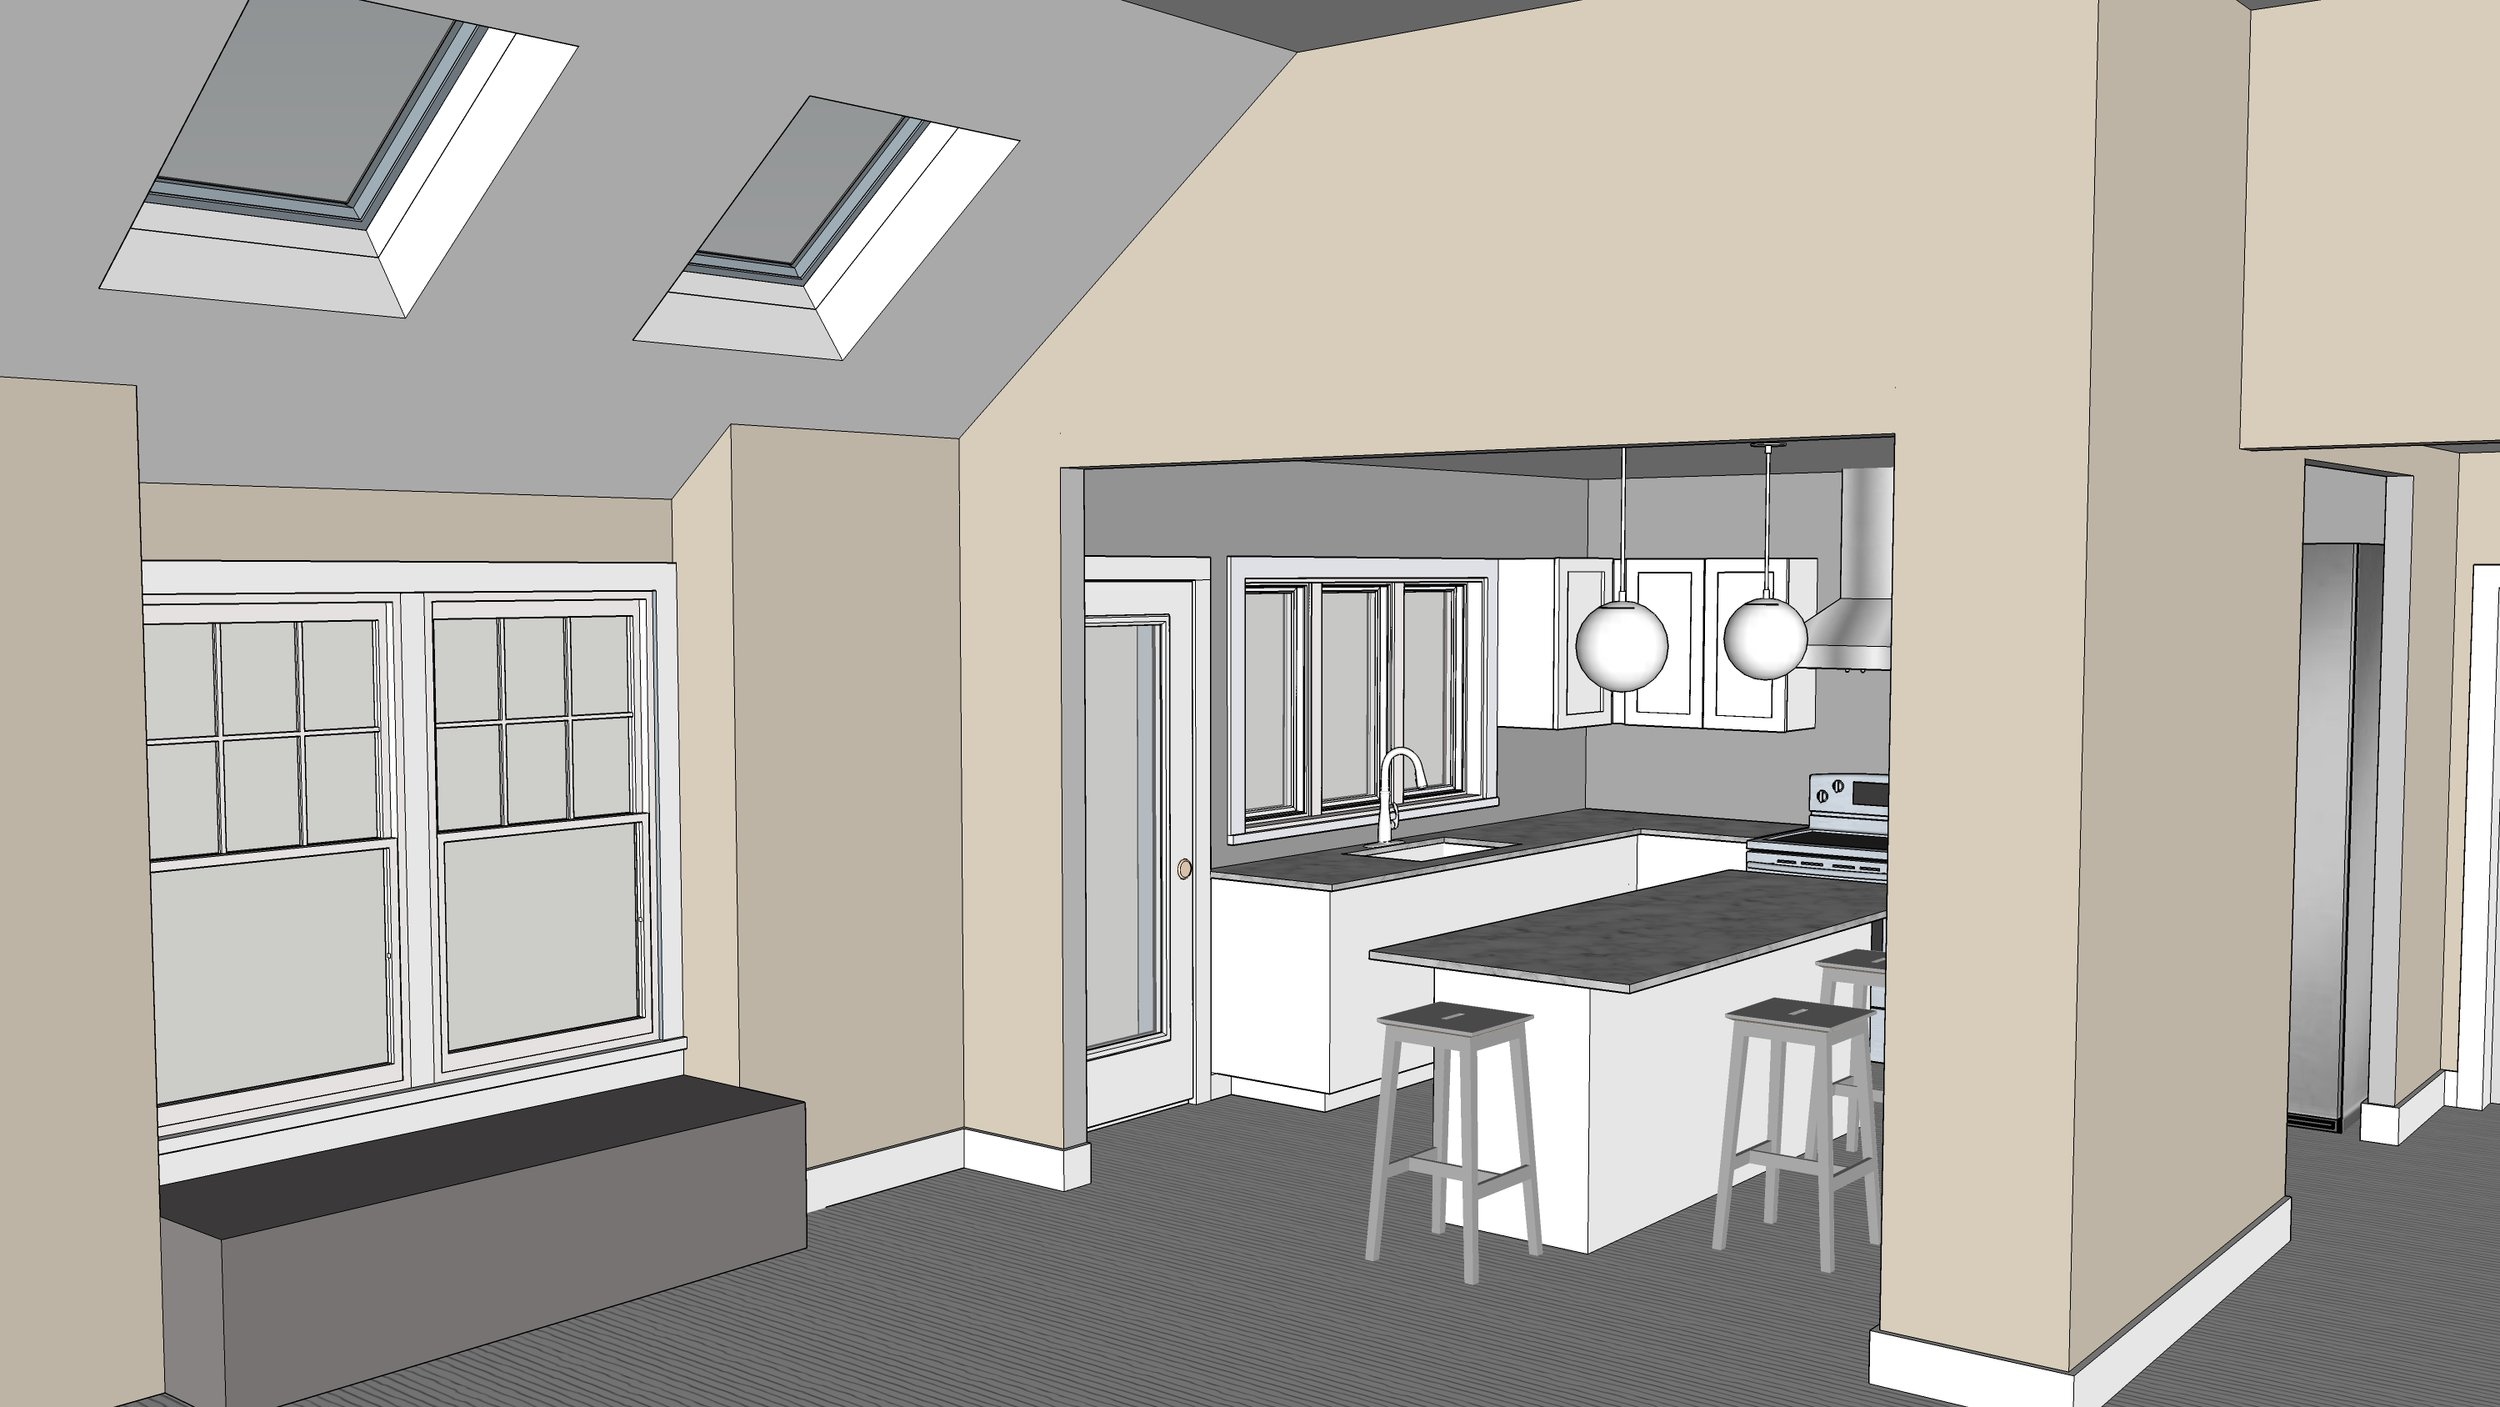 With 3D renderings, it's much easier to go back and forth, gather ideas,communicate in real time and make adjustments on the fly. The result a product that pleases the client and is of the highest quality.